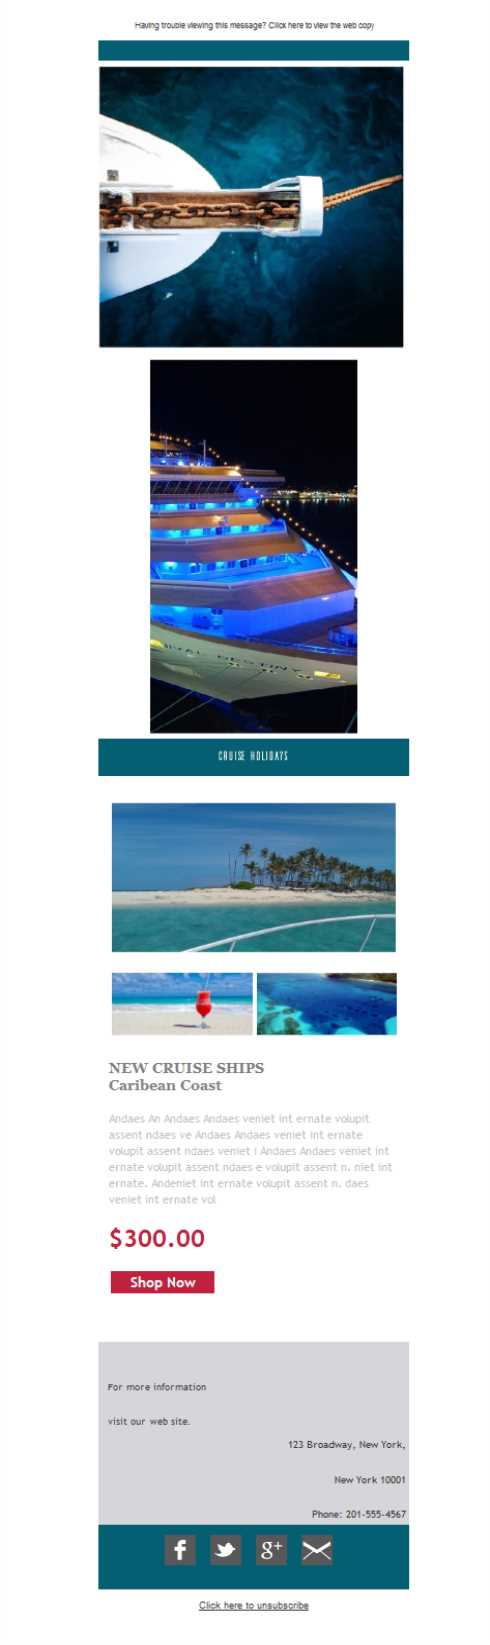 Templates Emailing Cruise Holiday Sarbacane